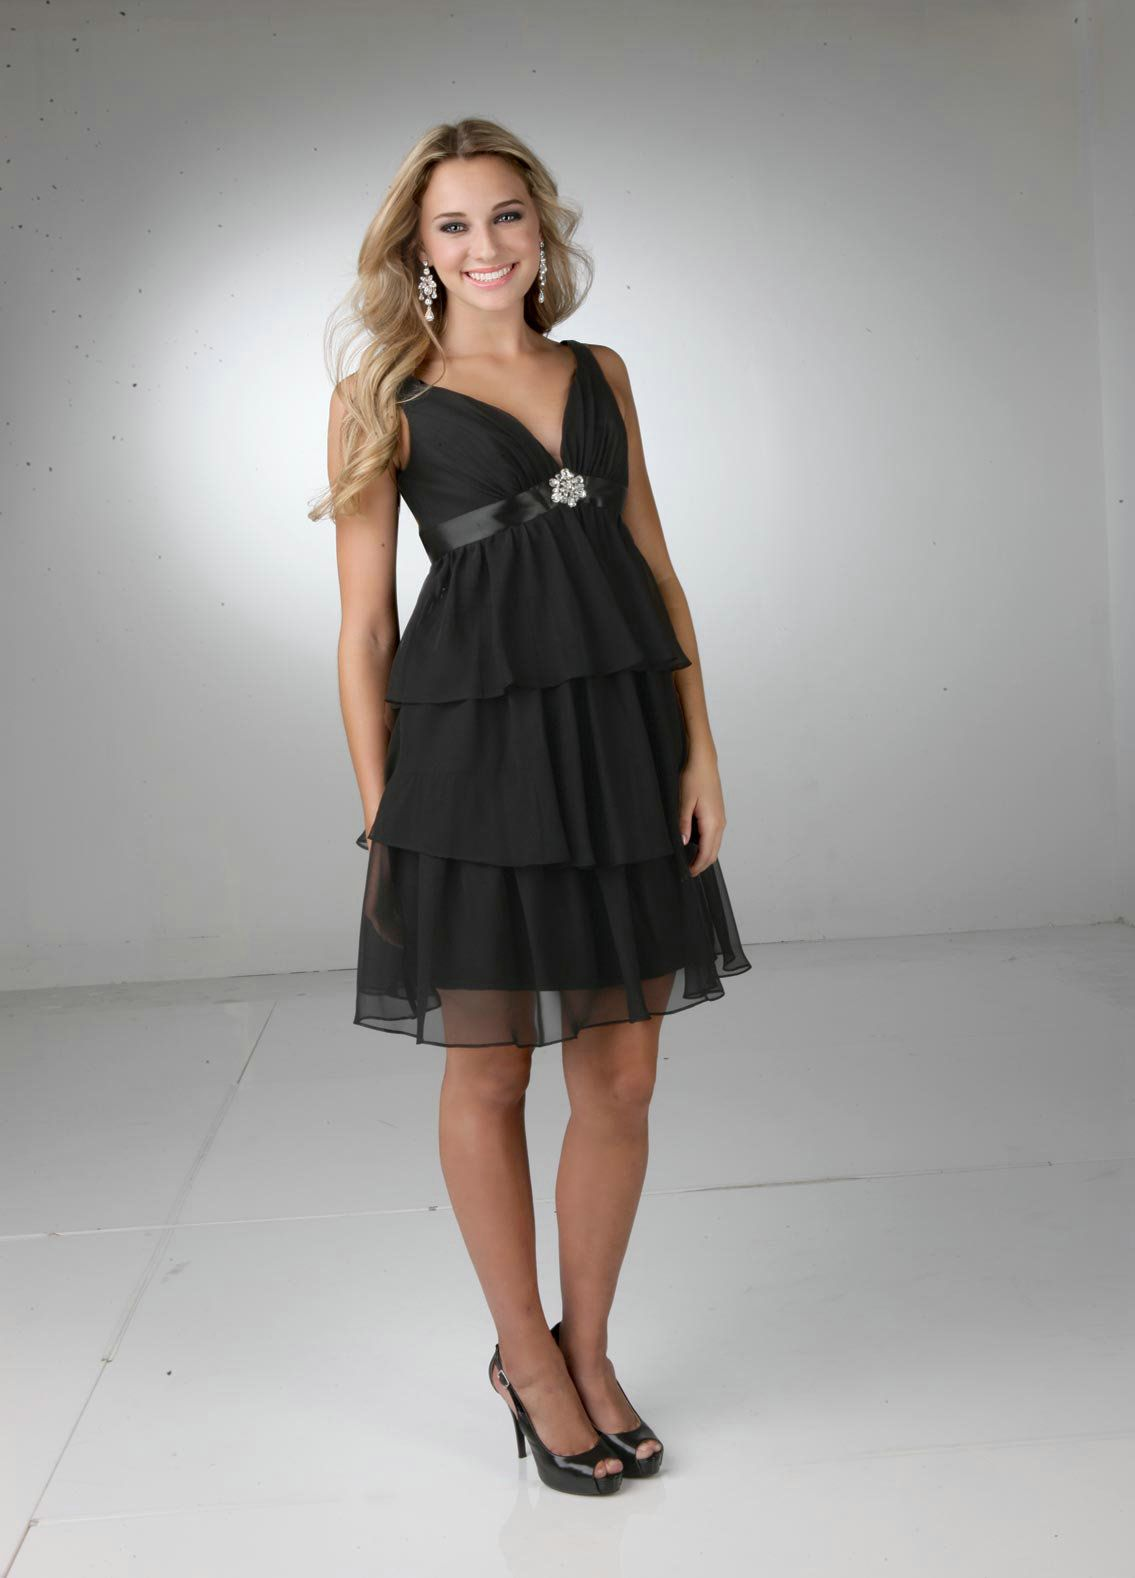 Elegant short black bridesmaid dress black bridesmaid dresses find this pin and more on black bridesmaid dresses by gracecather0125 ombrellifo Gallery